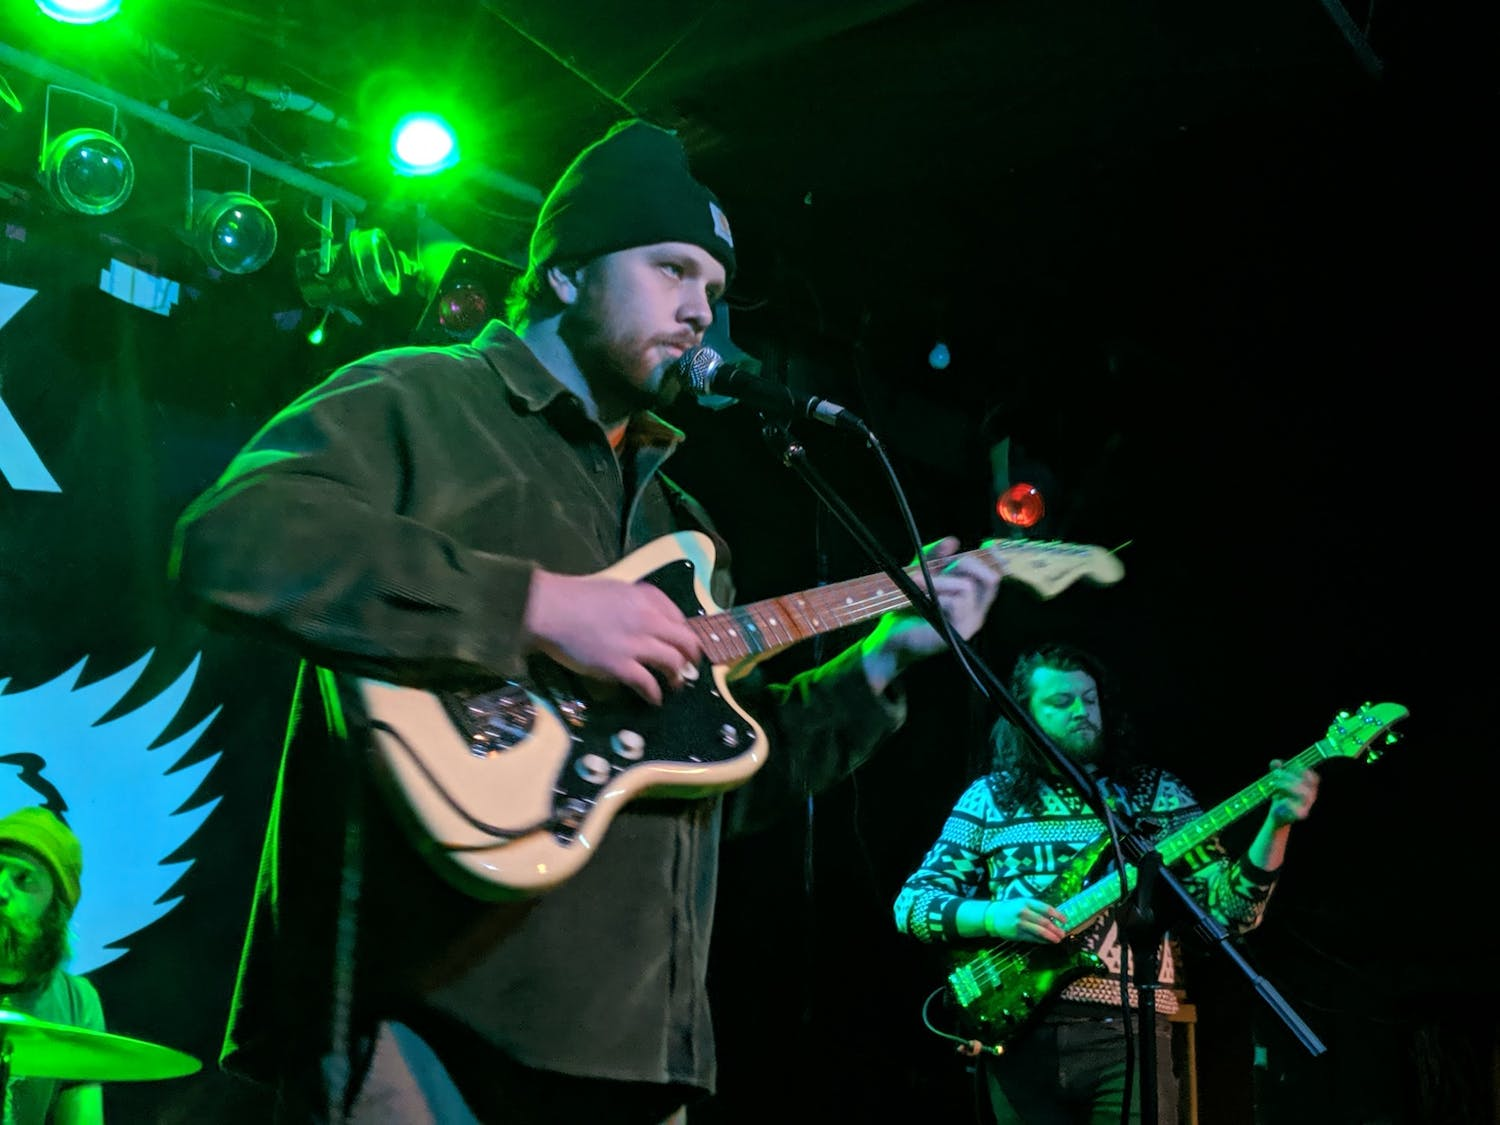 Joe Cardina performs with Dogs in Stereo at Mohawk Place on Friday Nov. 15.